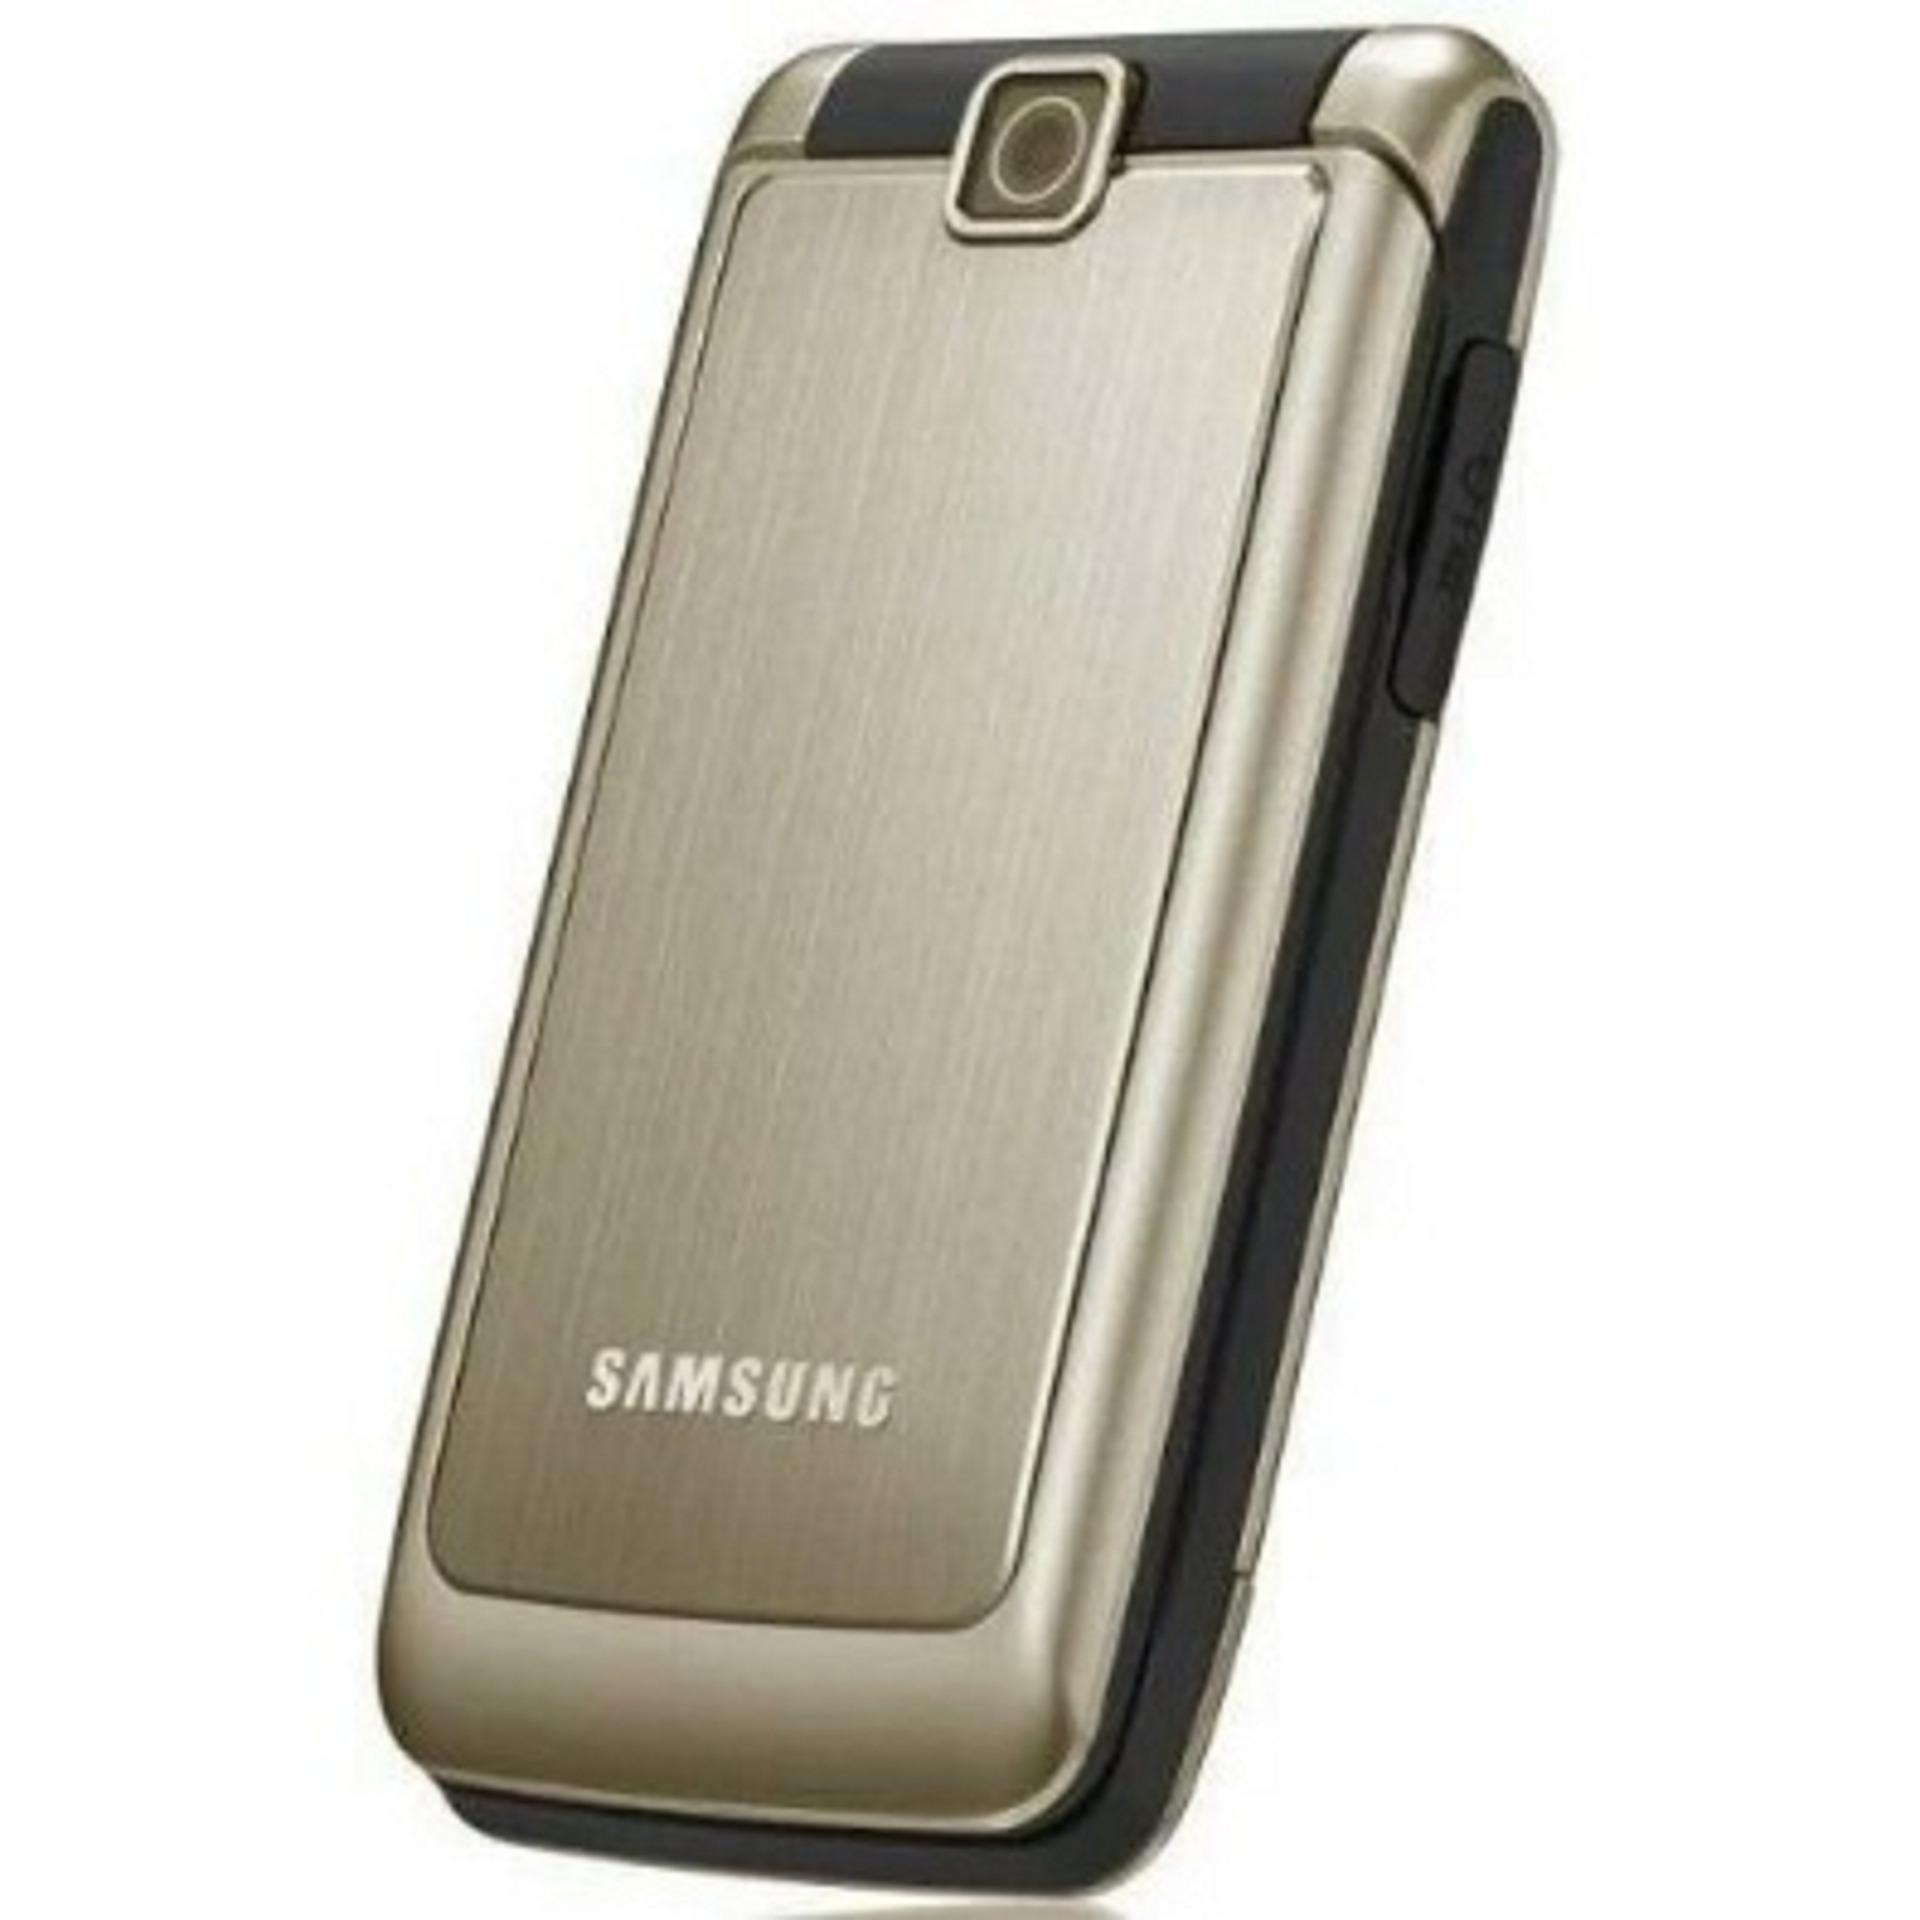 SAMSUNG S3600i FLIP BRAND NEW REFURBISHED